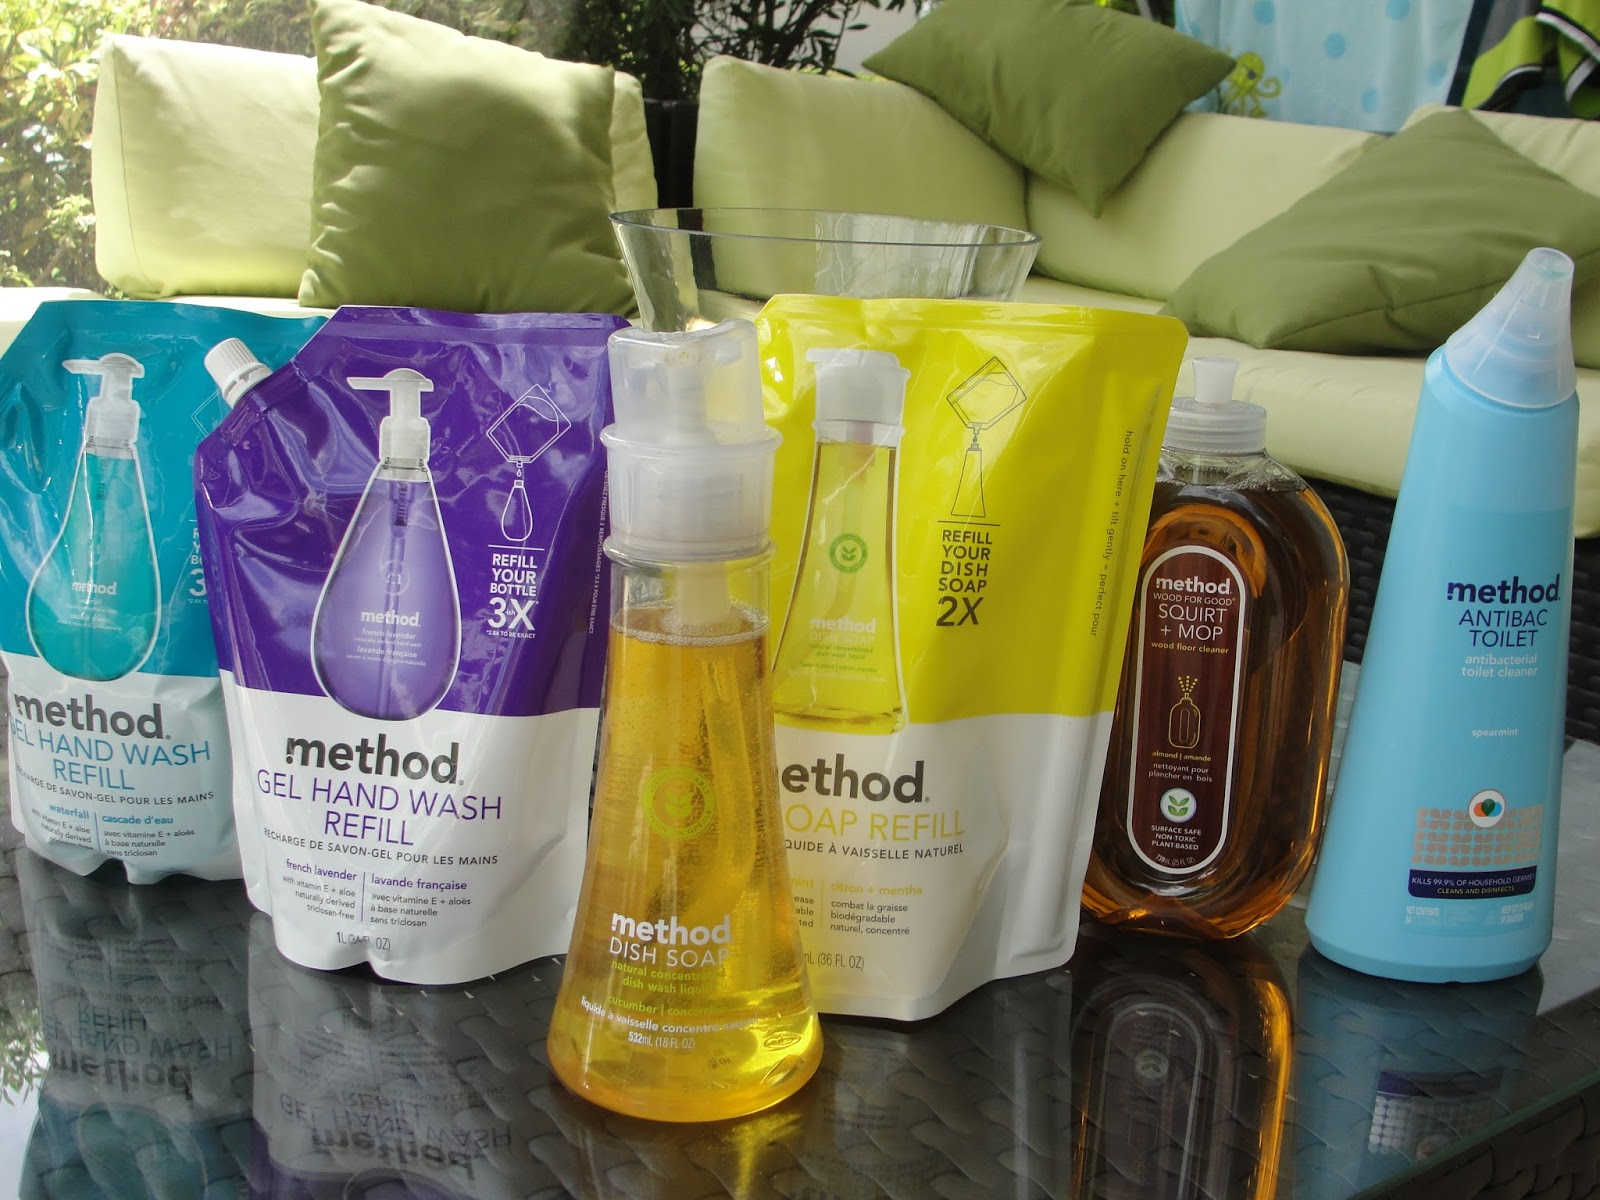 Cruelty Free Body Wash Amp Household Cleaner By Method